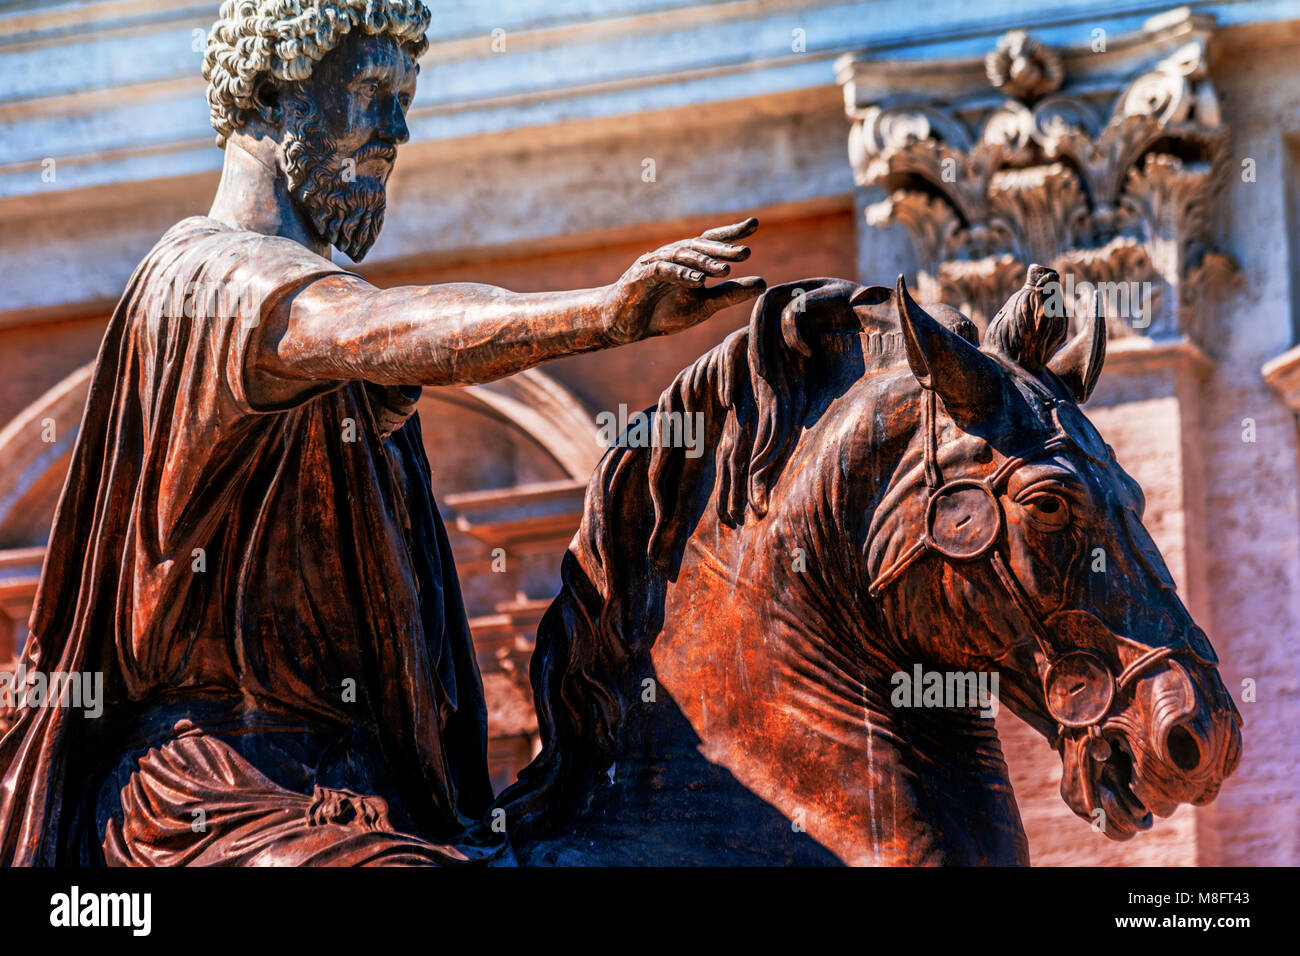 Equestrian Statue of Marcus Aurelius the Roman Emperor and stoic philosopher with detail of horse with bridle in - Stock Image